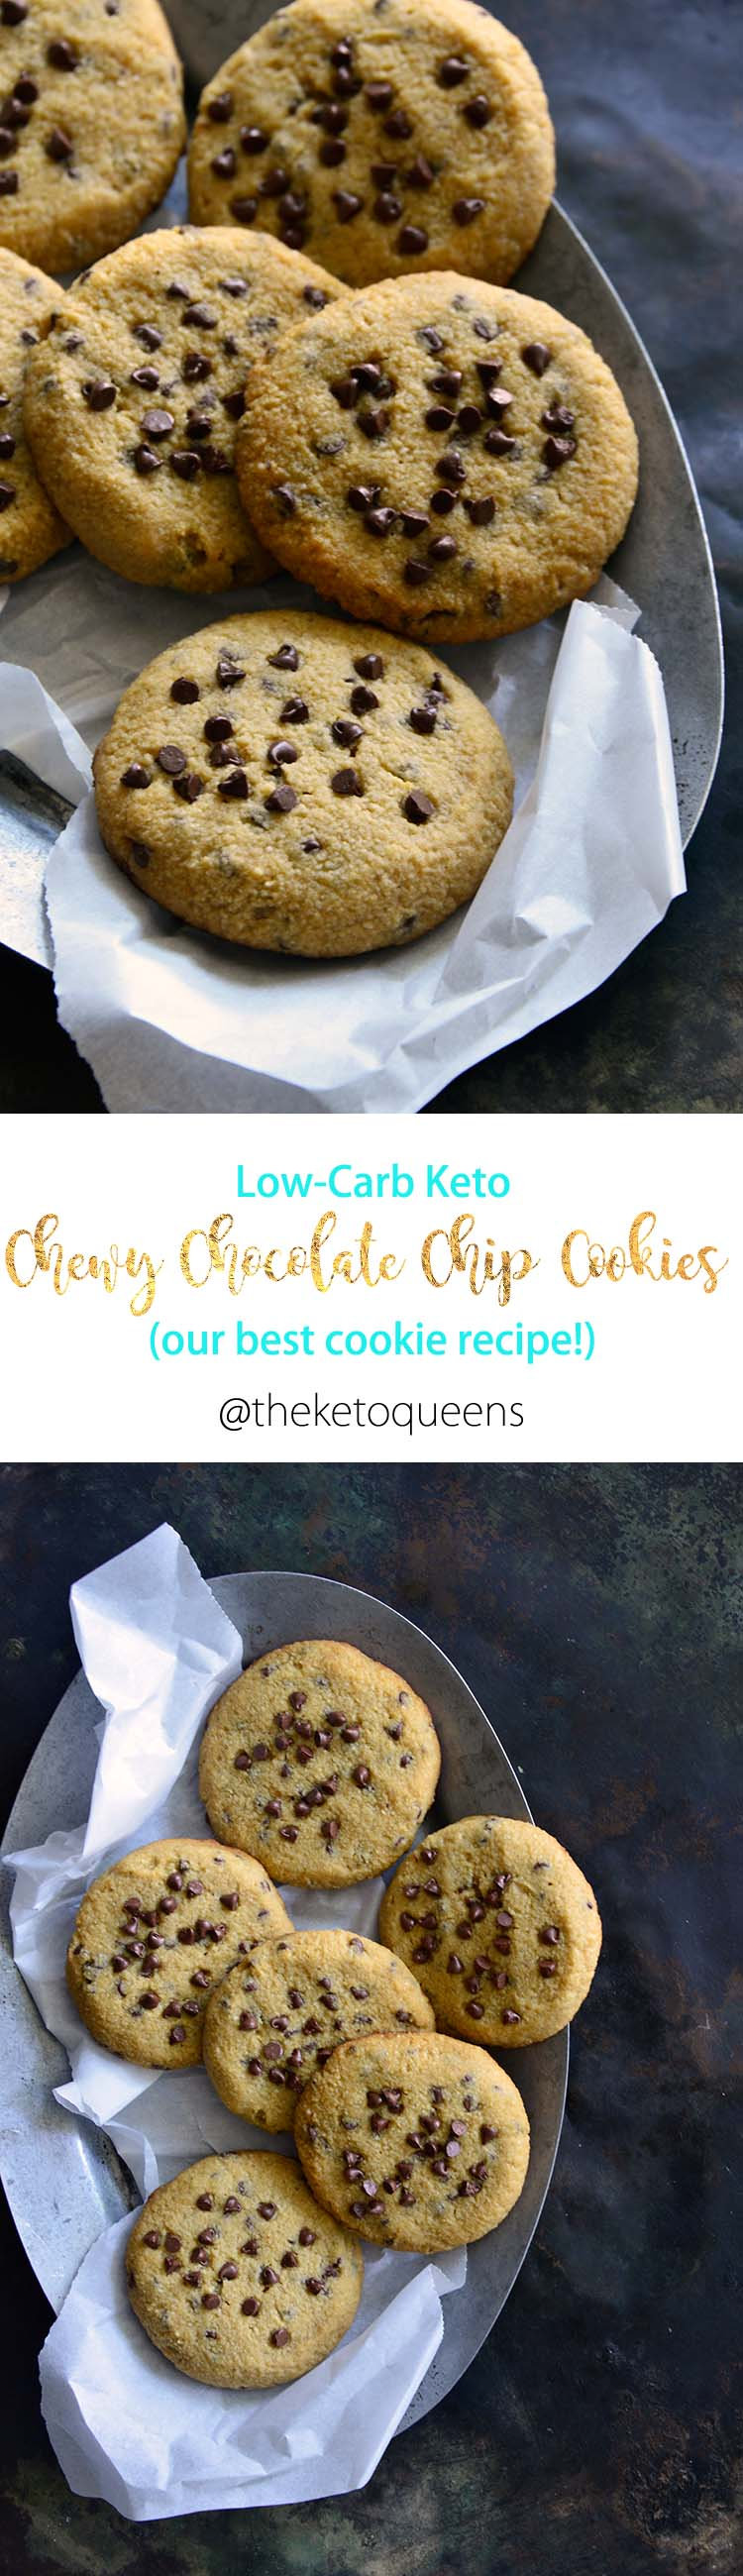 Our Keto Chewy Chocolate Chip Cookies have a chewy texture, buttery, vanilla-scented, notes of brown sugar, and stevia-sweetened chocolate chips.